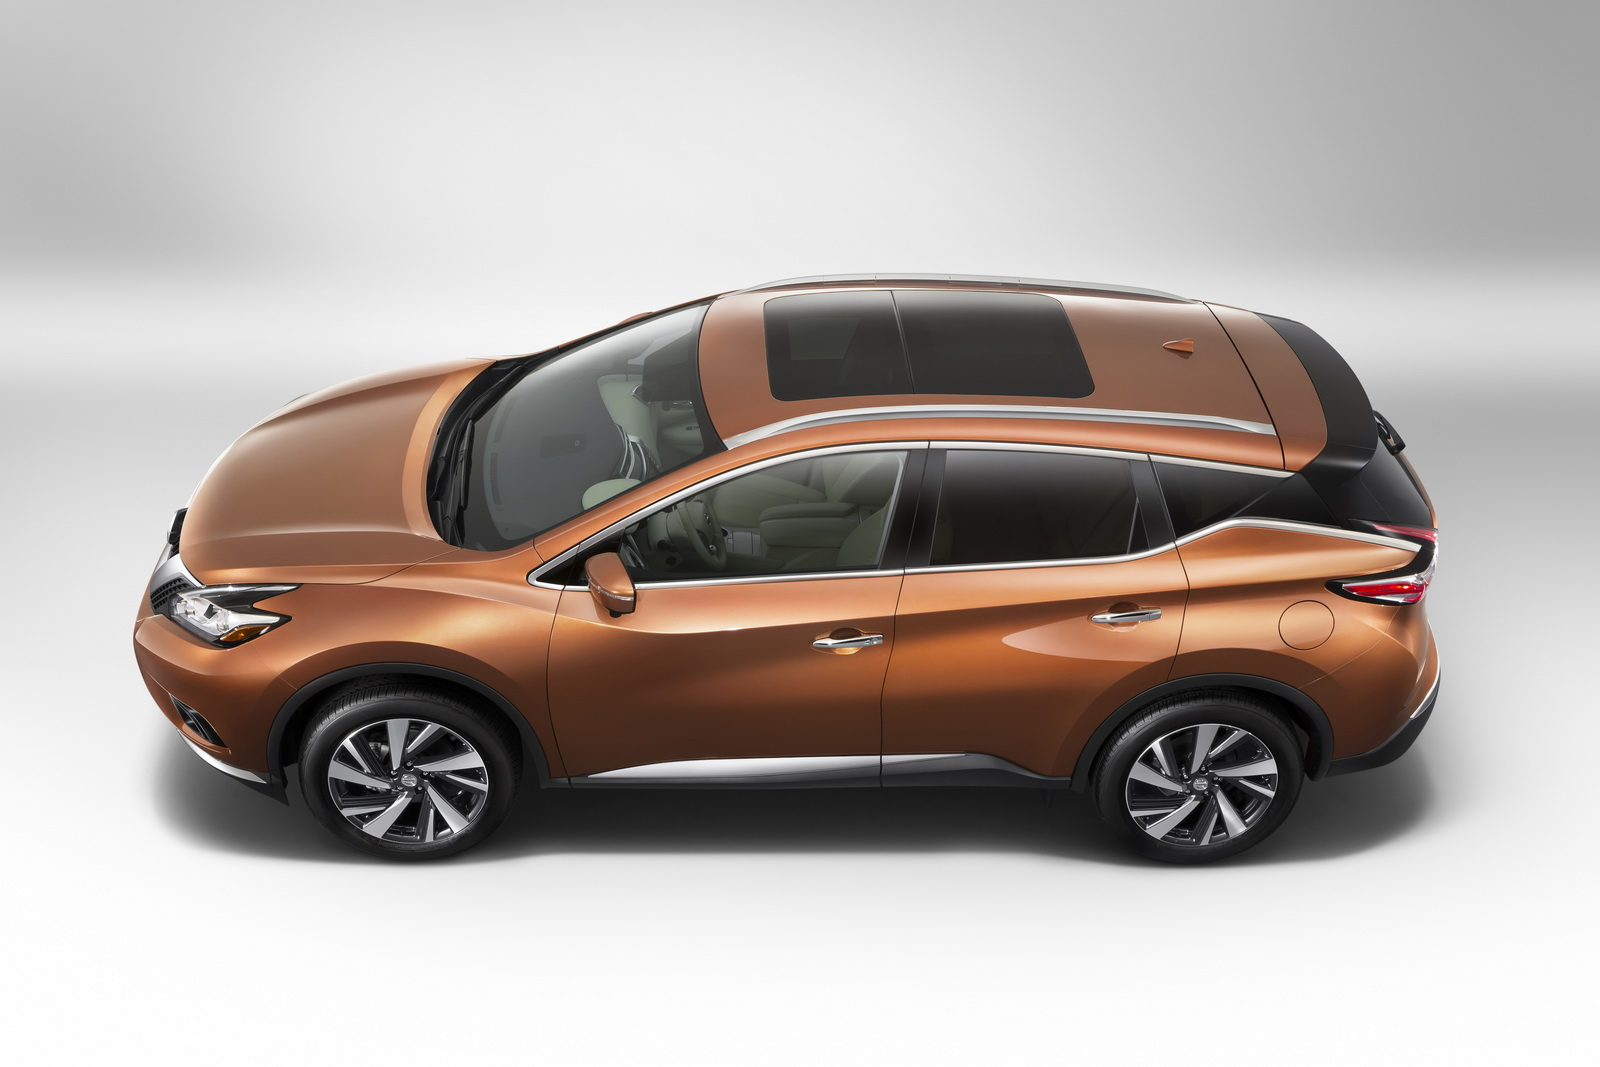 2016 nissan murano available now priced from 29 660 47 pics. Black Bedroom Furniture Sets. Home Design Ideas